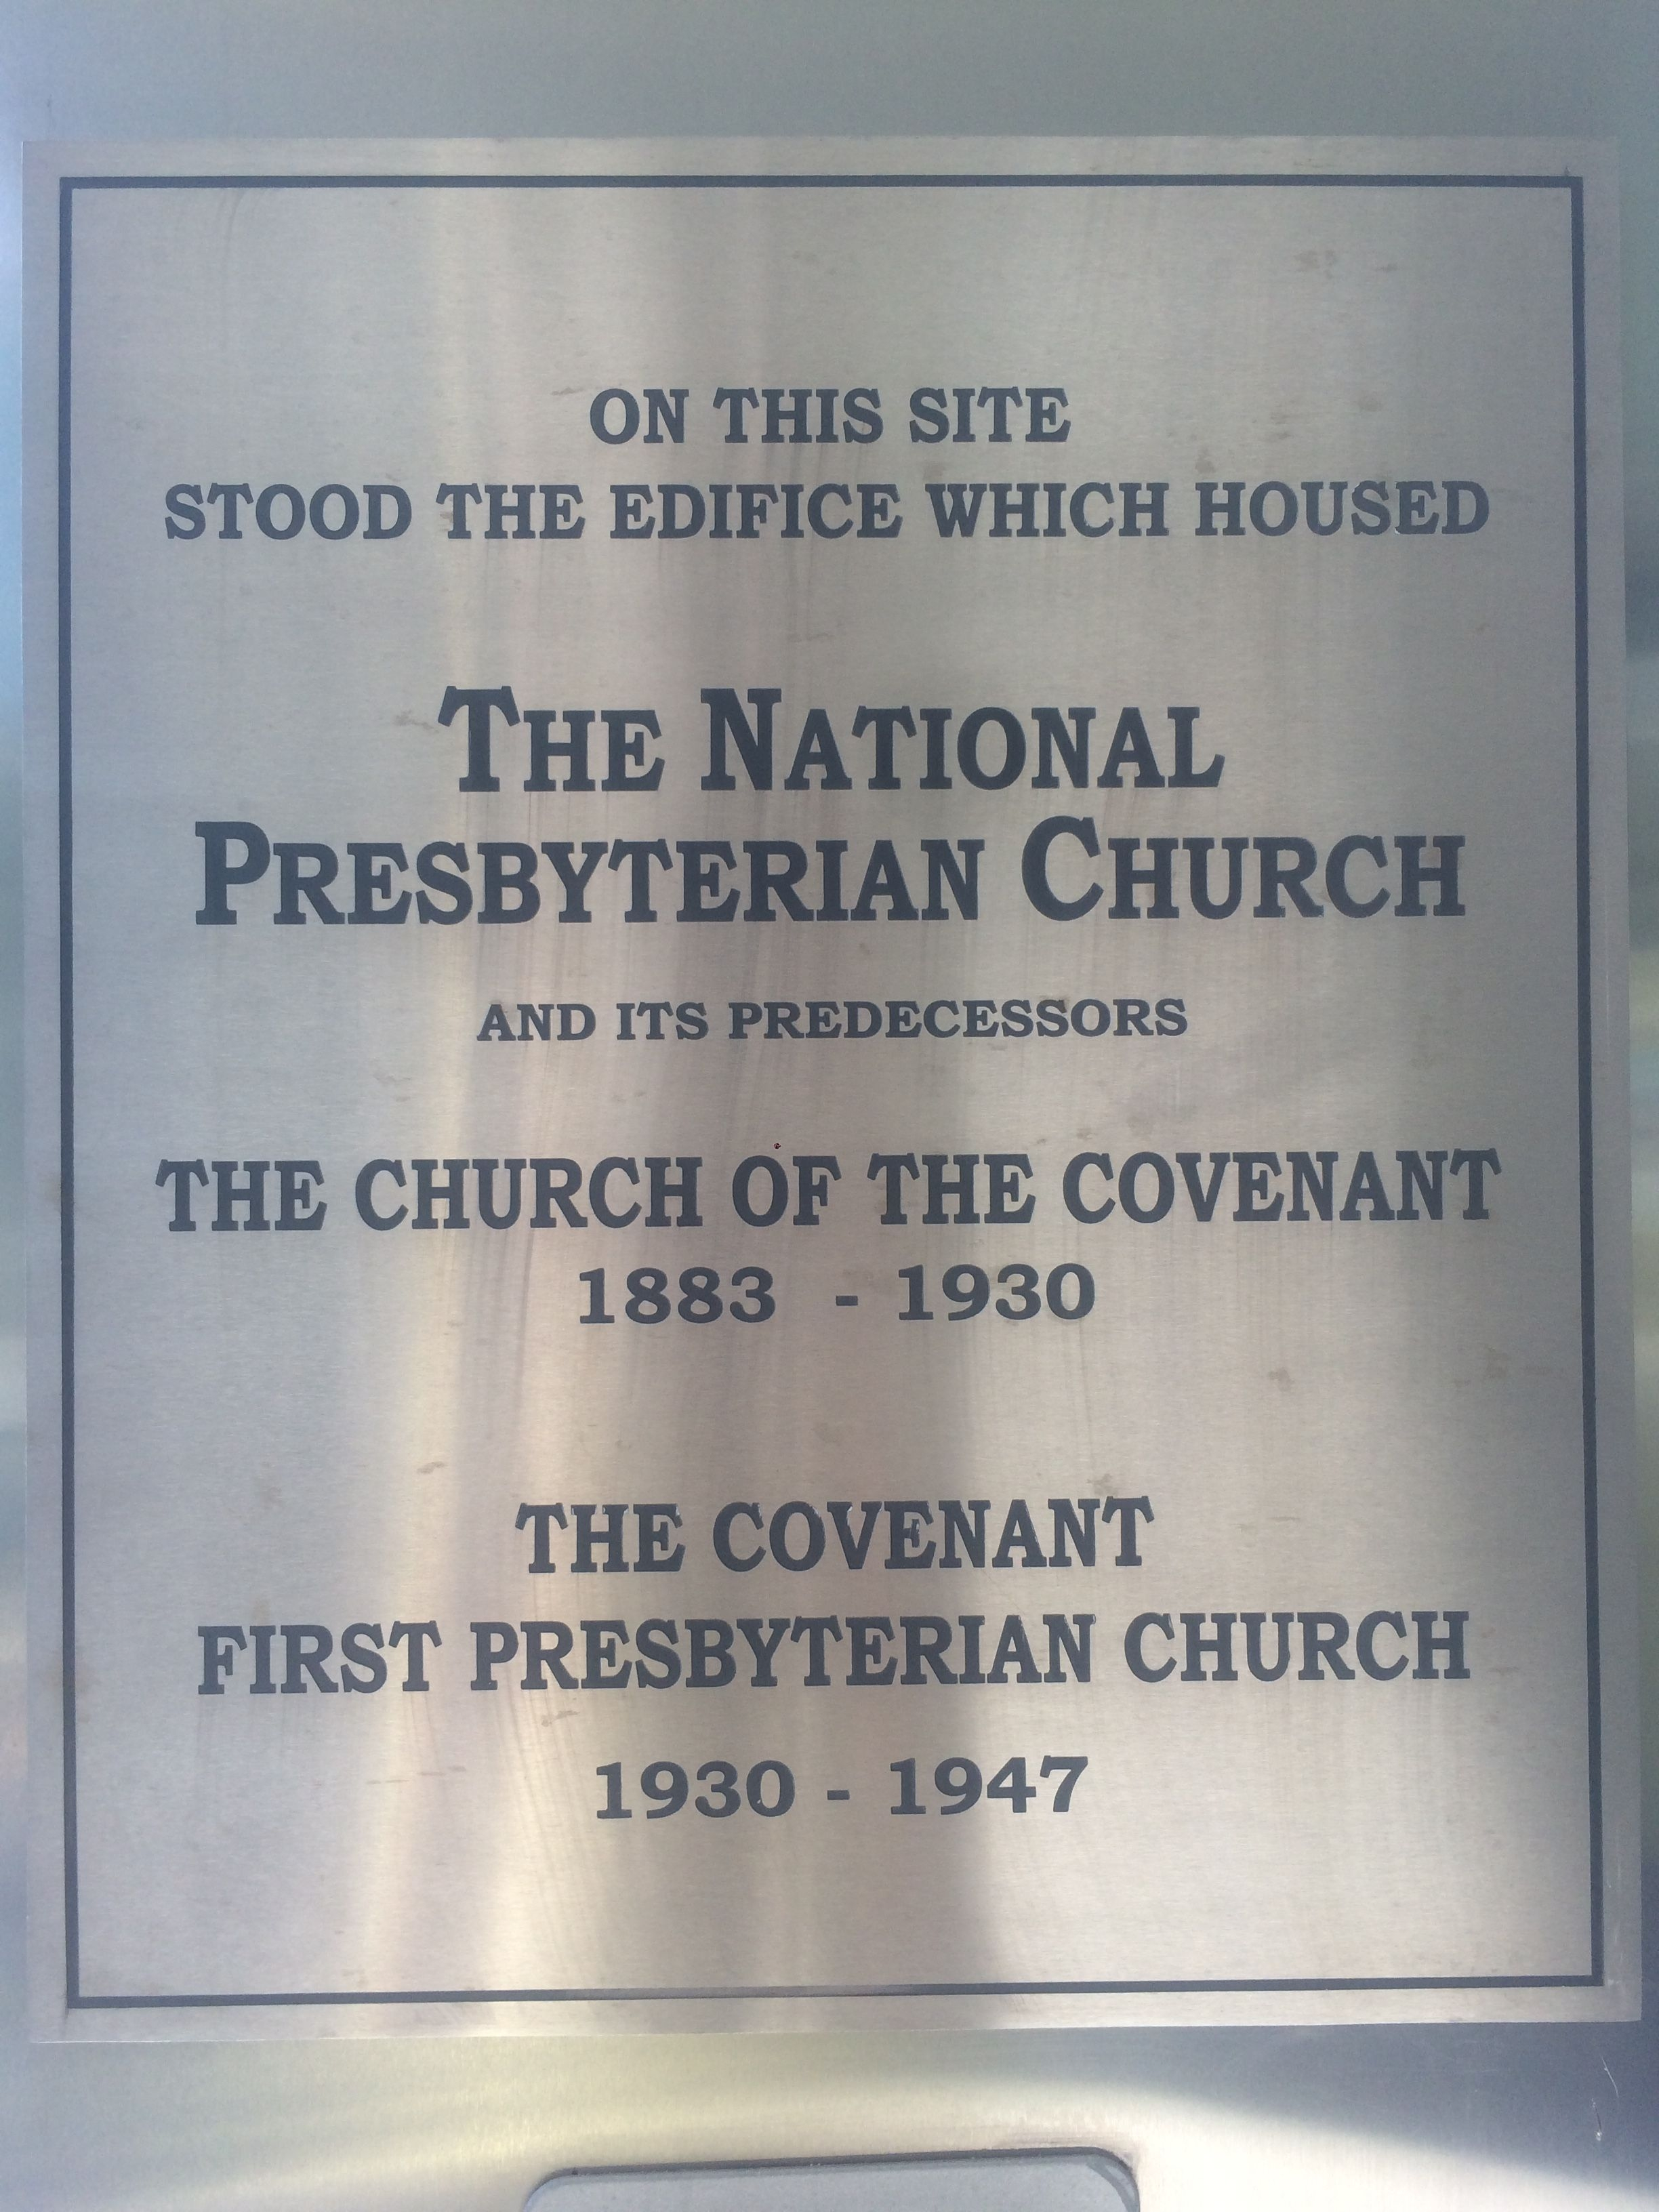 The National Presbyterian Church Marker